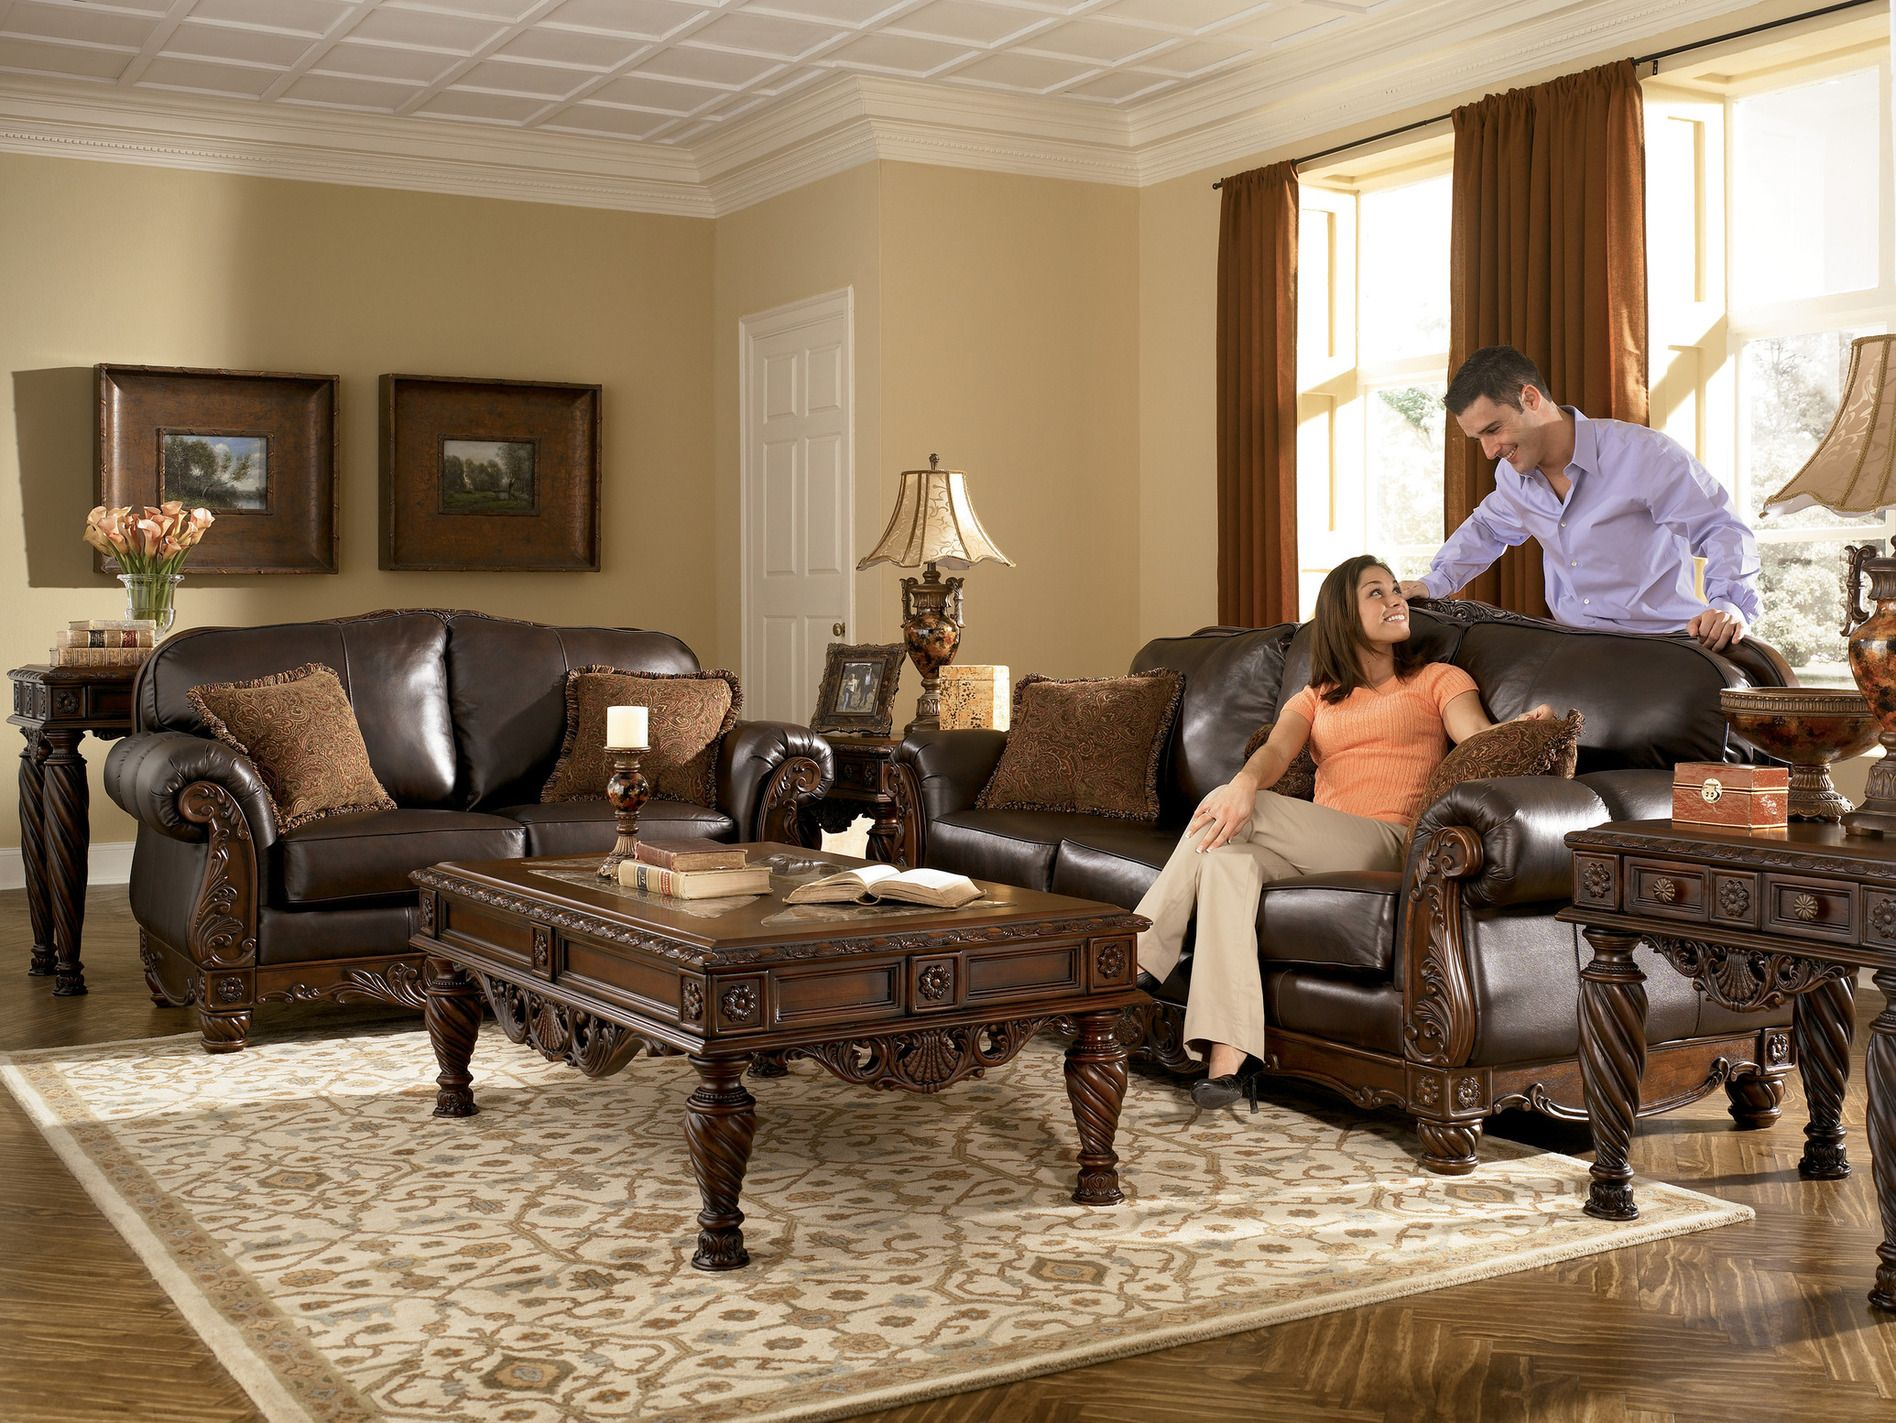 3pc Leather Living Room Set Bel Furniture Houston San Antonio Living Room Leather Leather Living Room Set Living Room Sets Furniture